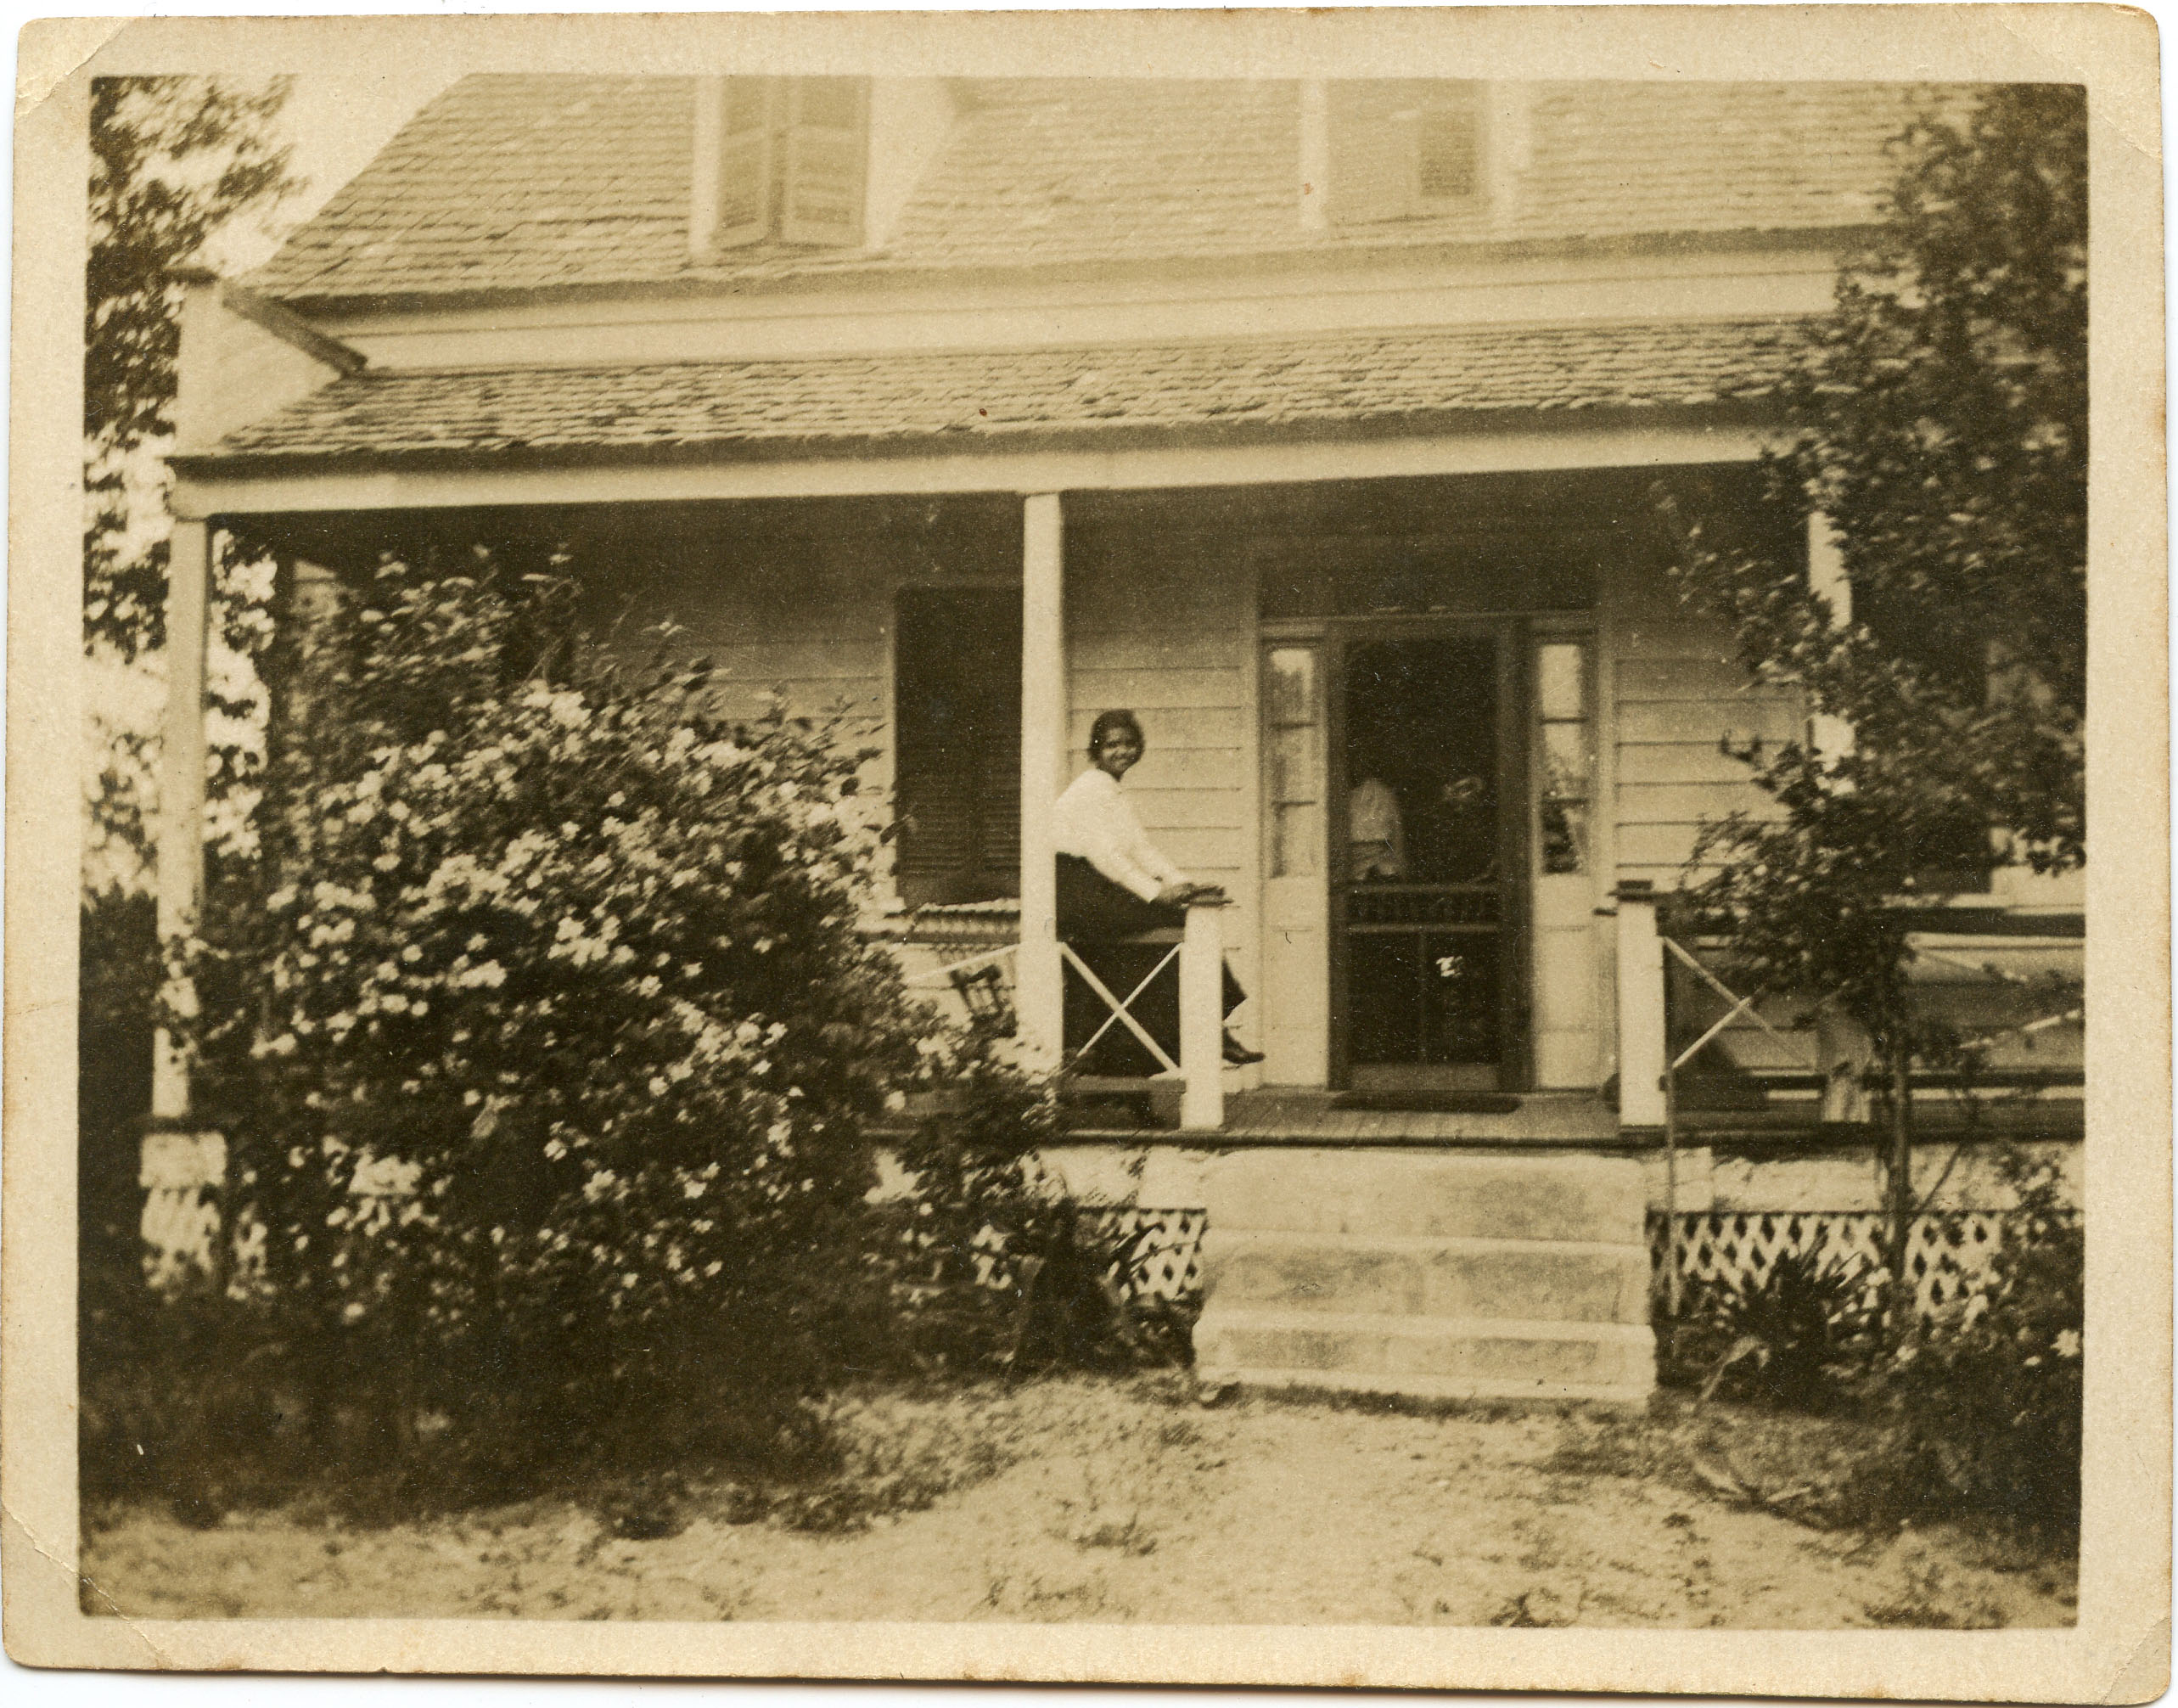 Miriam DeCosta Seabrook seated on porch railing